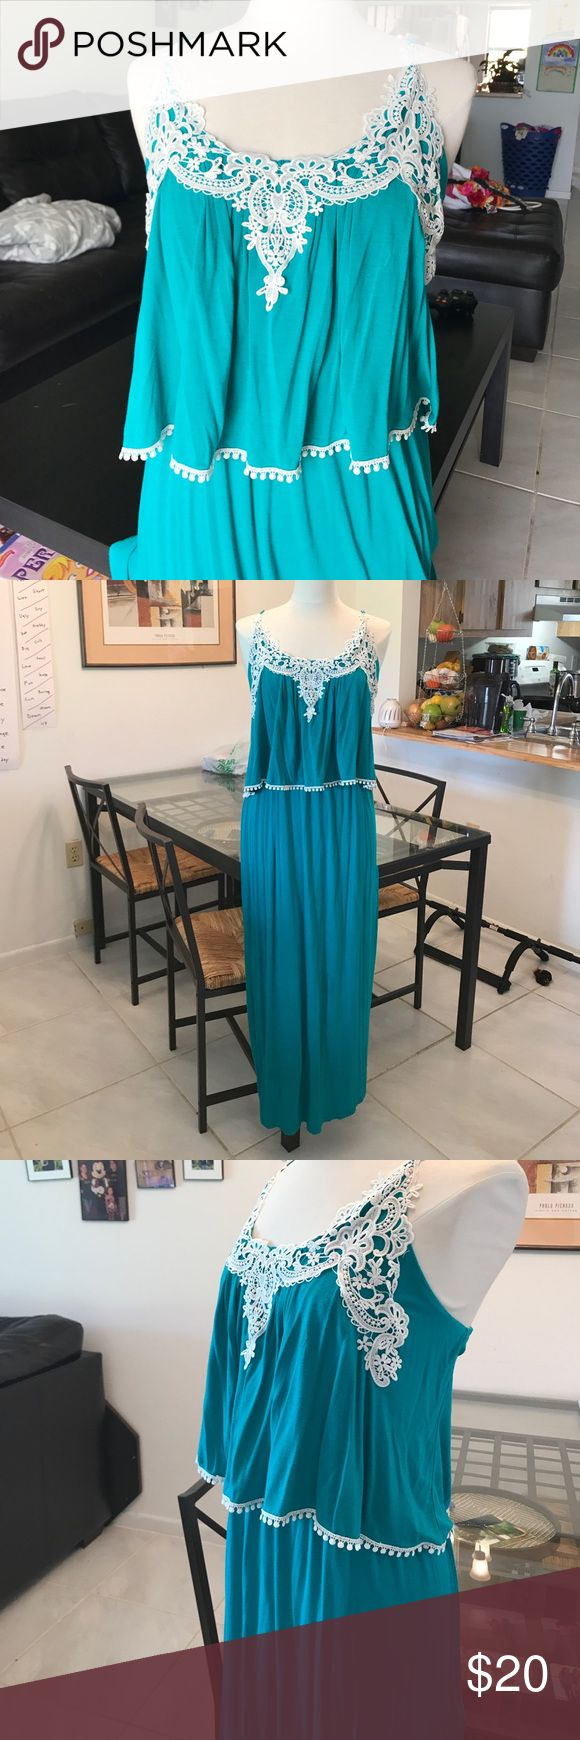 Maxi dress Really nice teal maxi dress. Easy to dress up or down can be worn to any occasion. Only wore one time to a wedding. Has stretch and very flattering to all body types Dresses Maxi